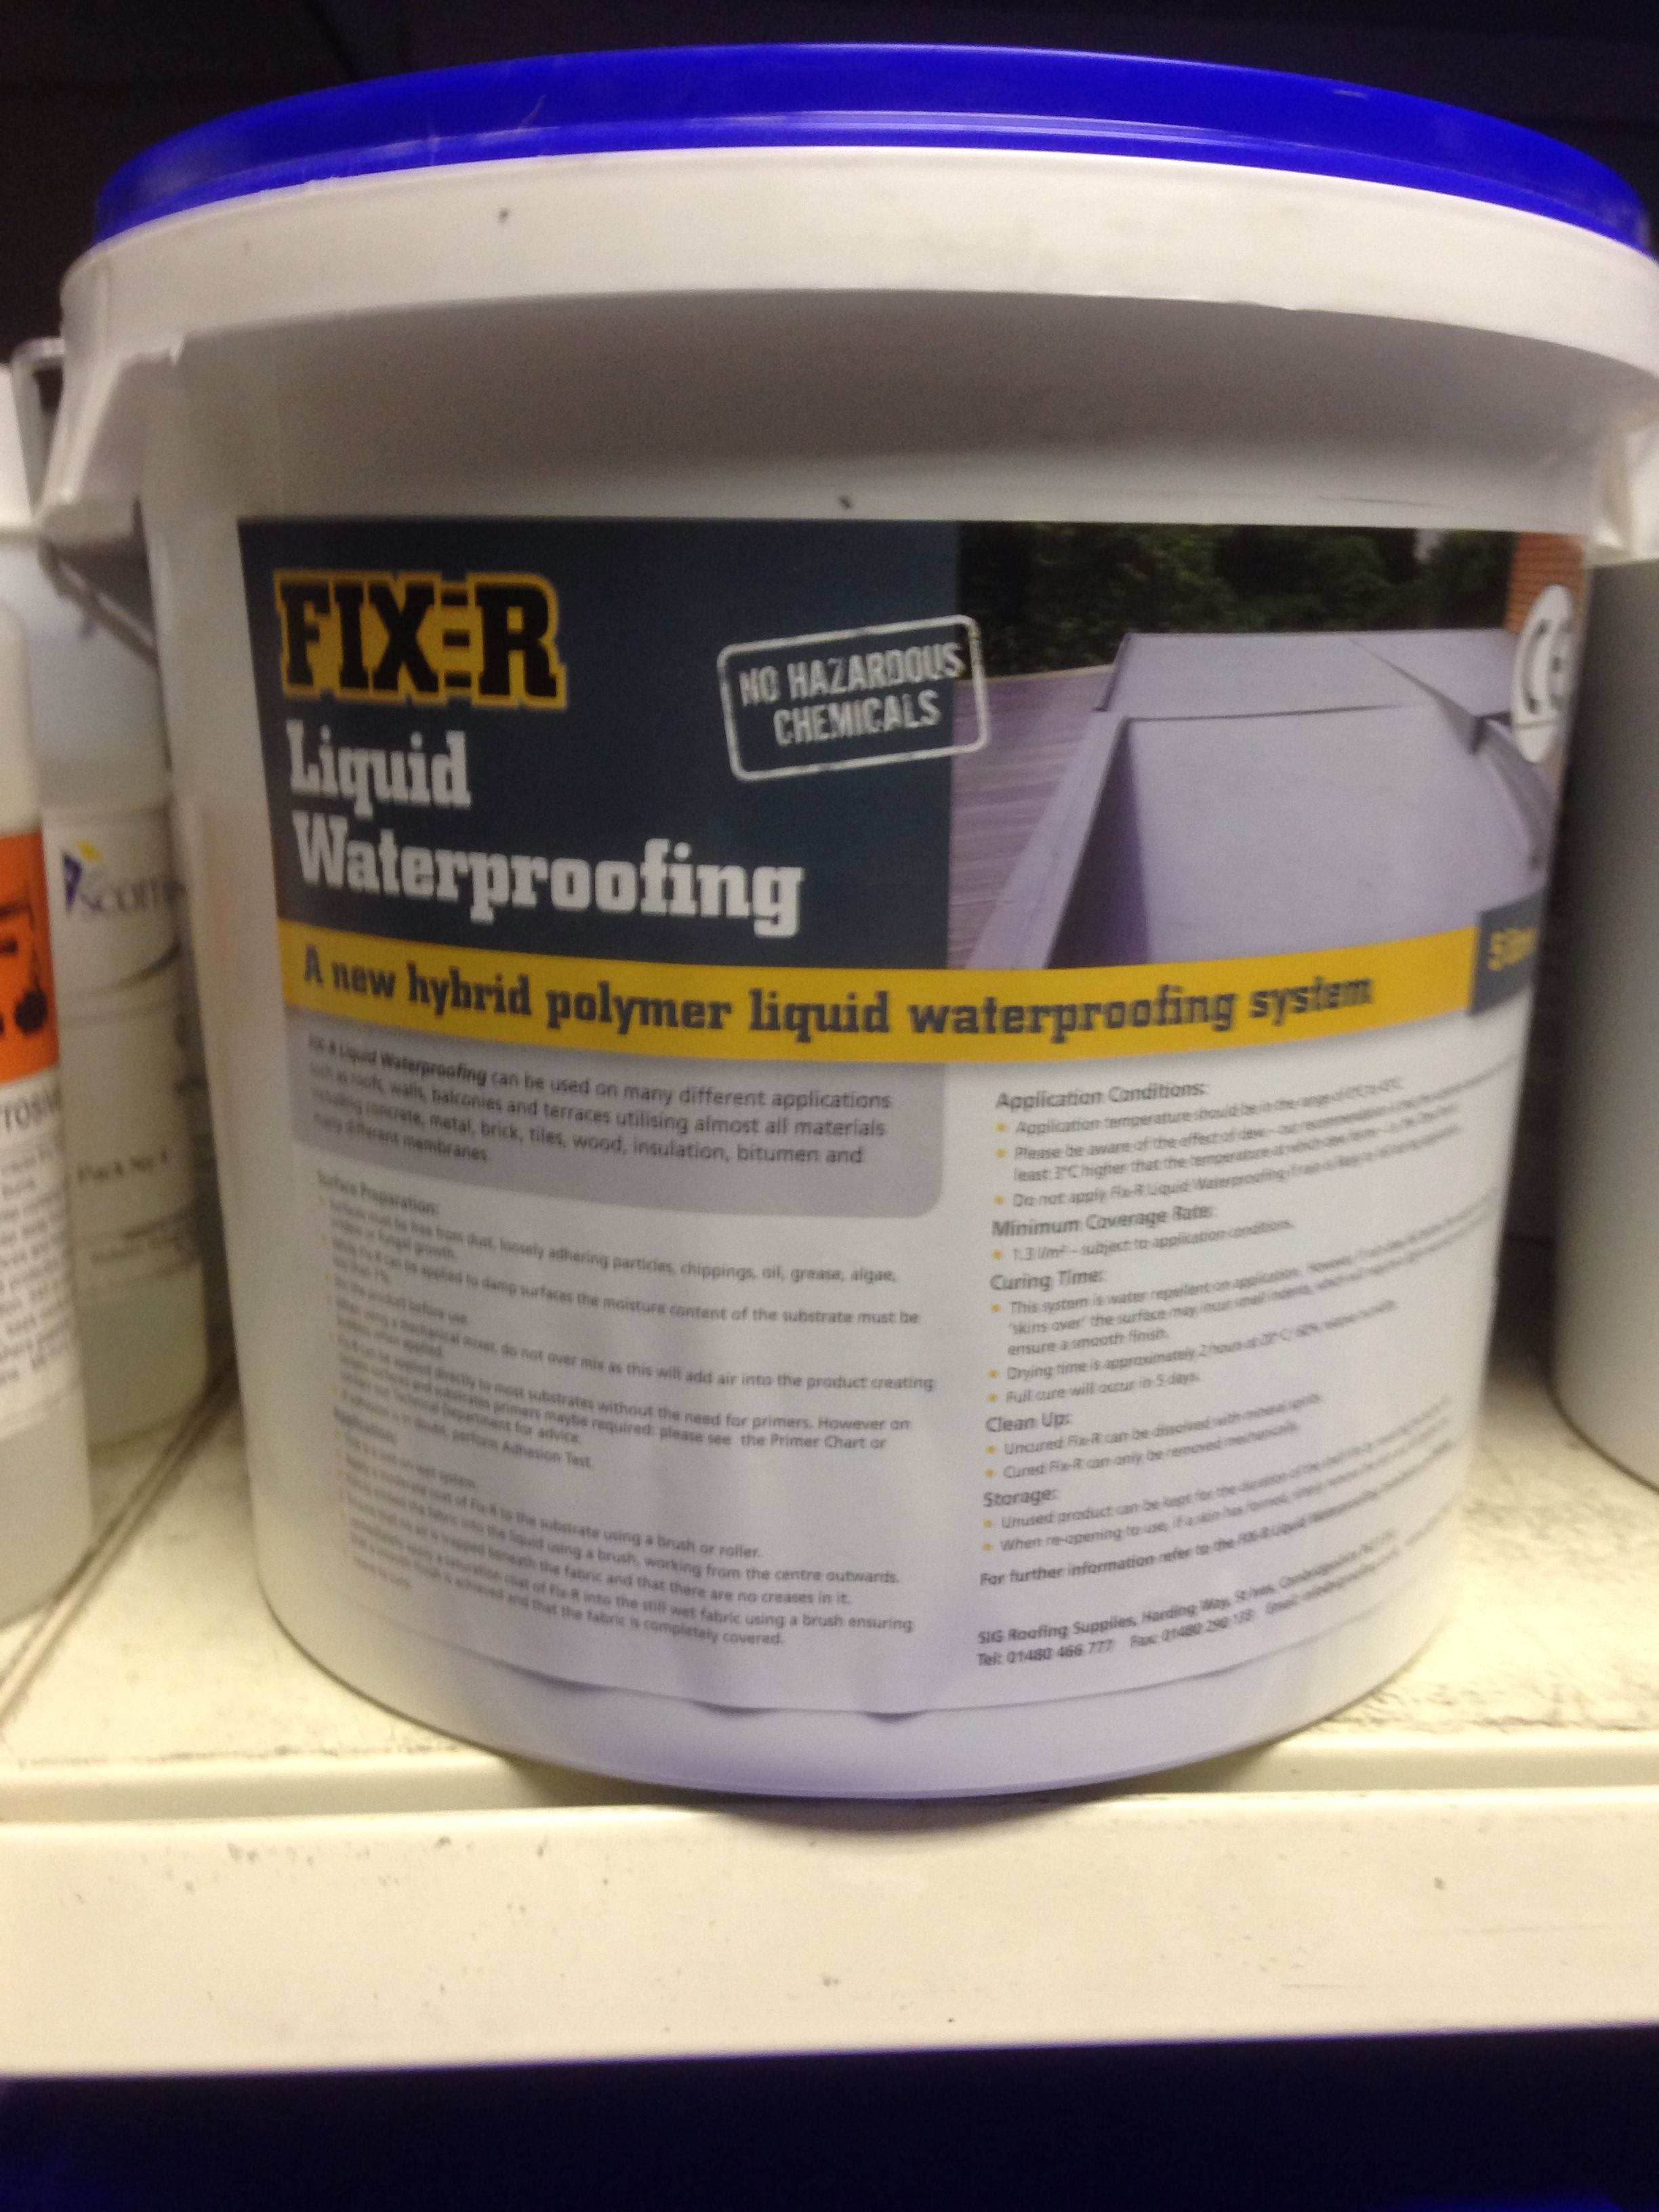 Cold Applied Liquid Waterproofing For Flat Roofs Fix R Liquid Waterproofing Available At All Sig Roofing Rooflin Liquid Waterproofing Roof Repair Flat Roof